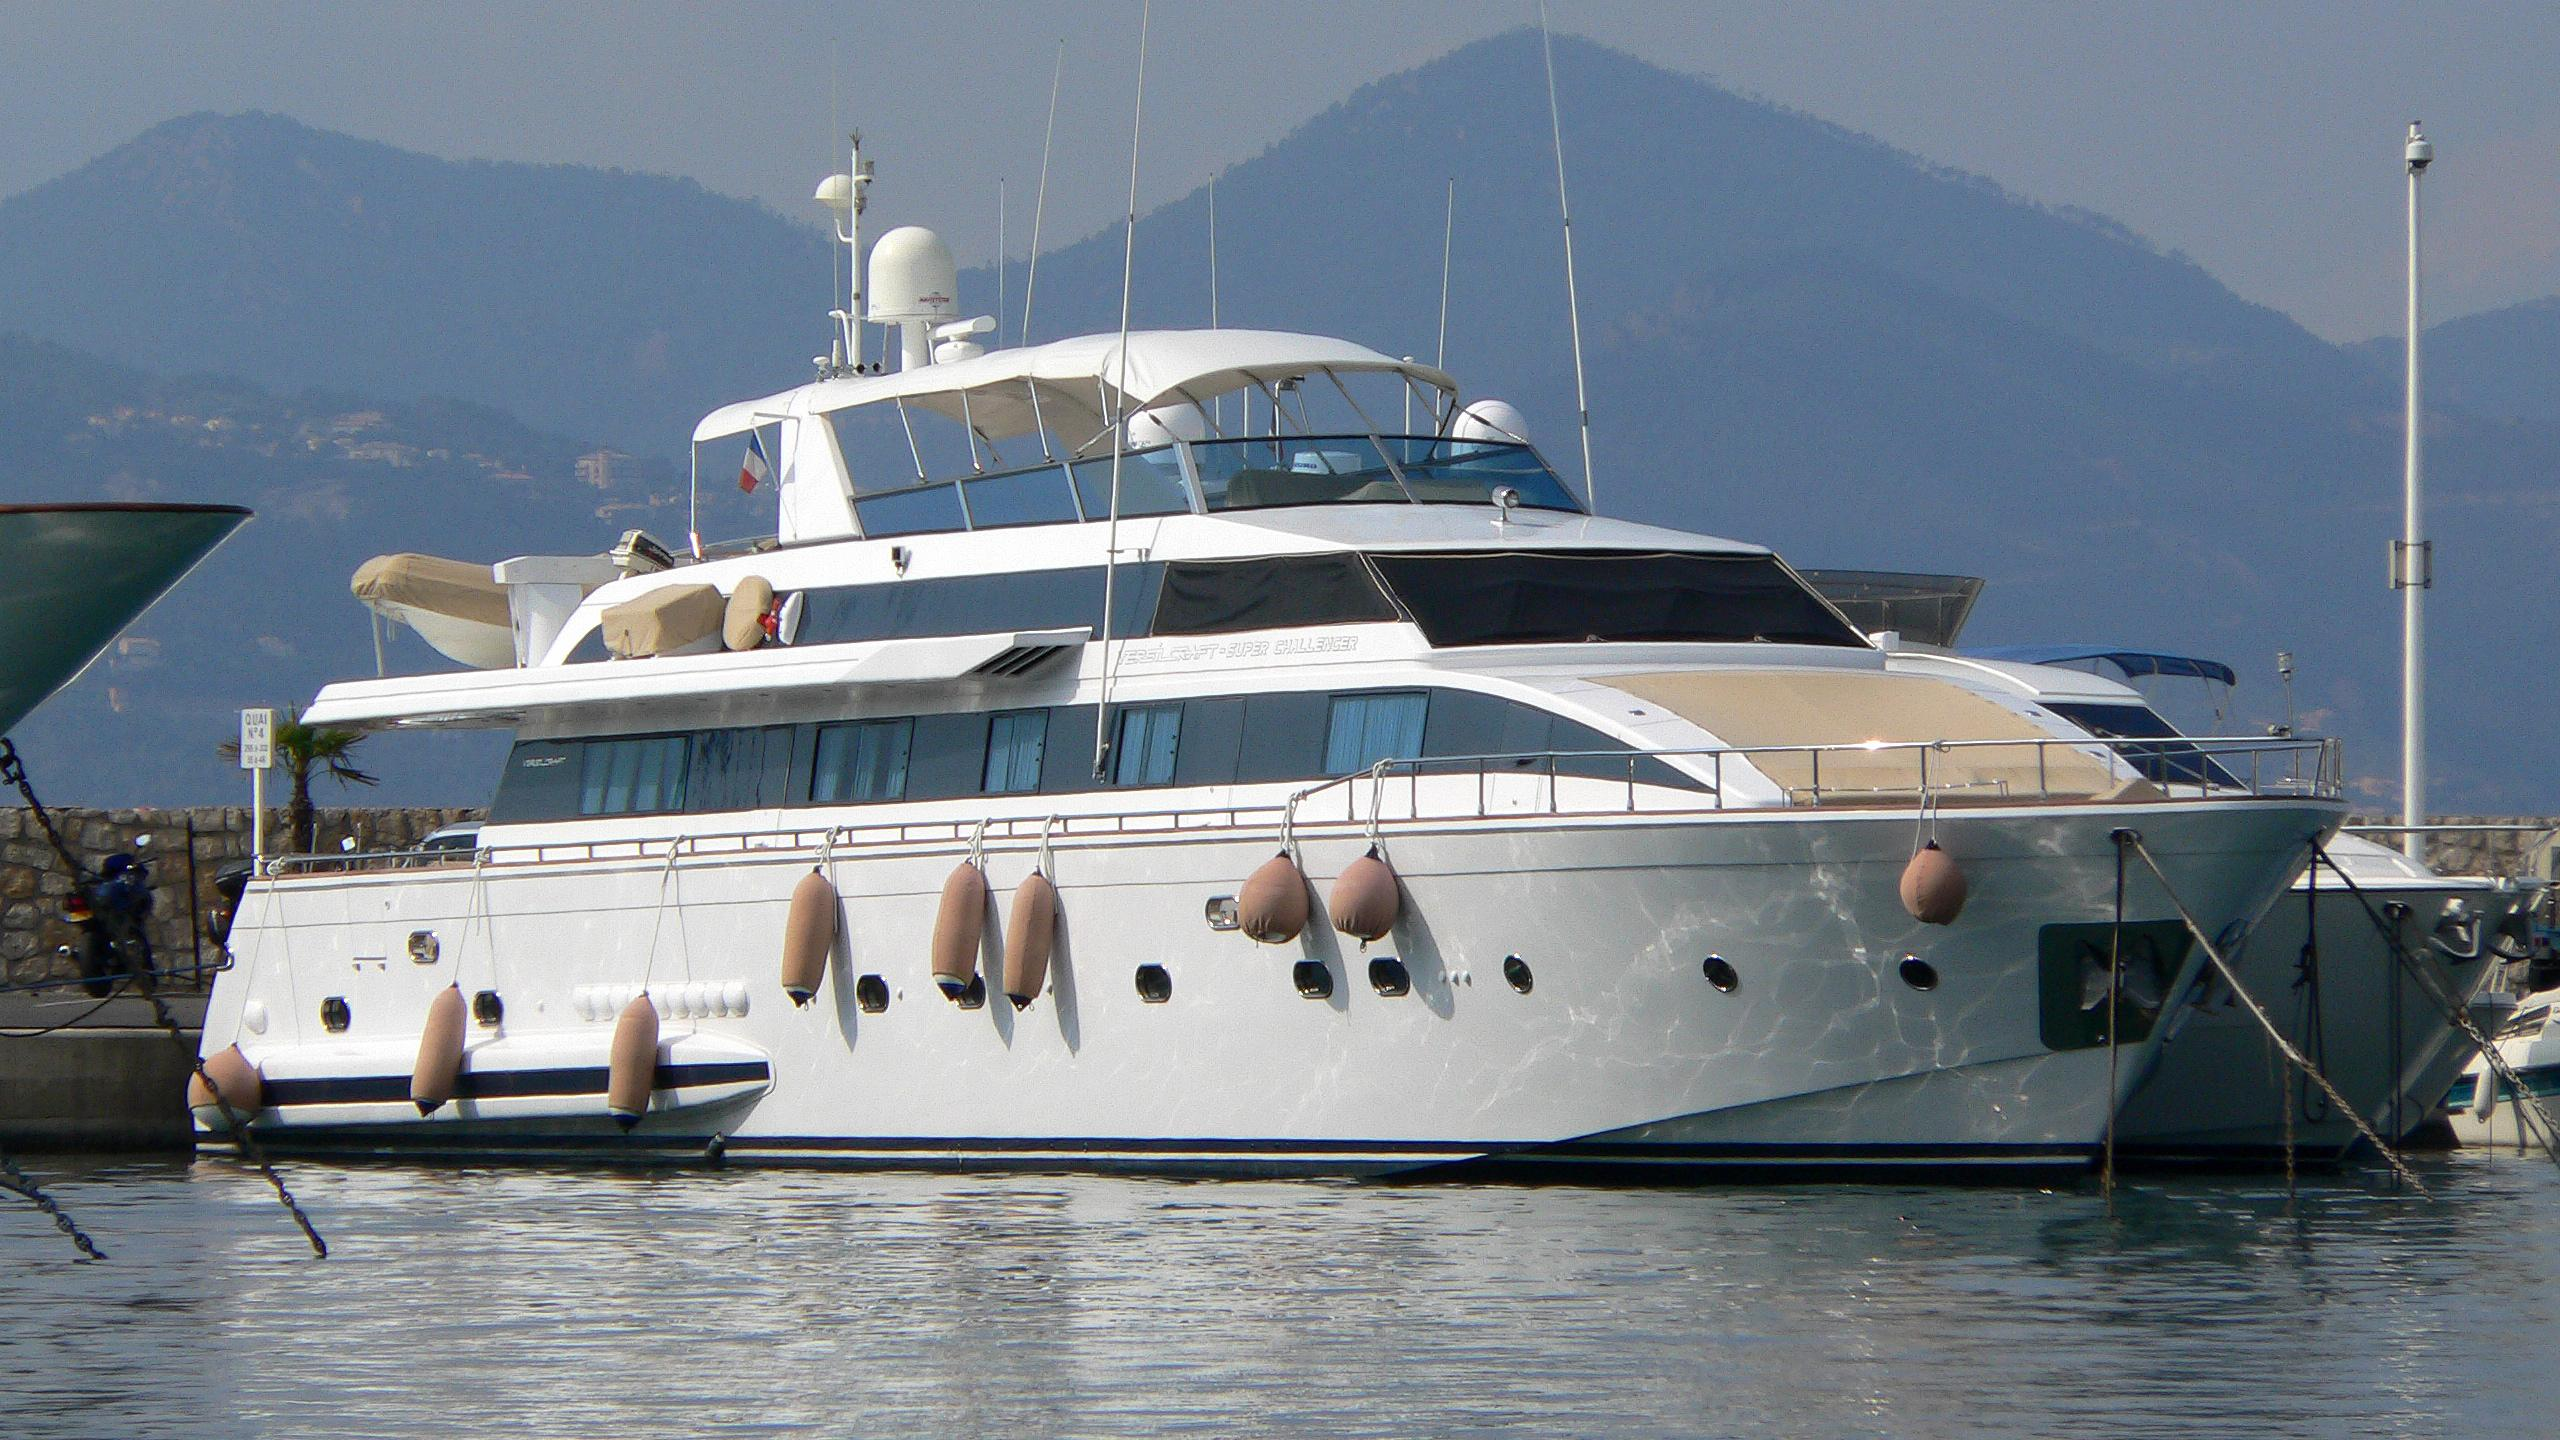 miss-candy-motor-yacht-versilcraft-1996-30m-moored-half-profile